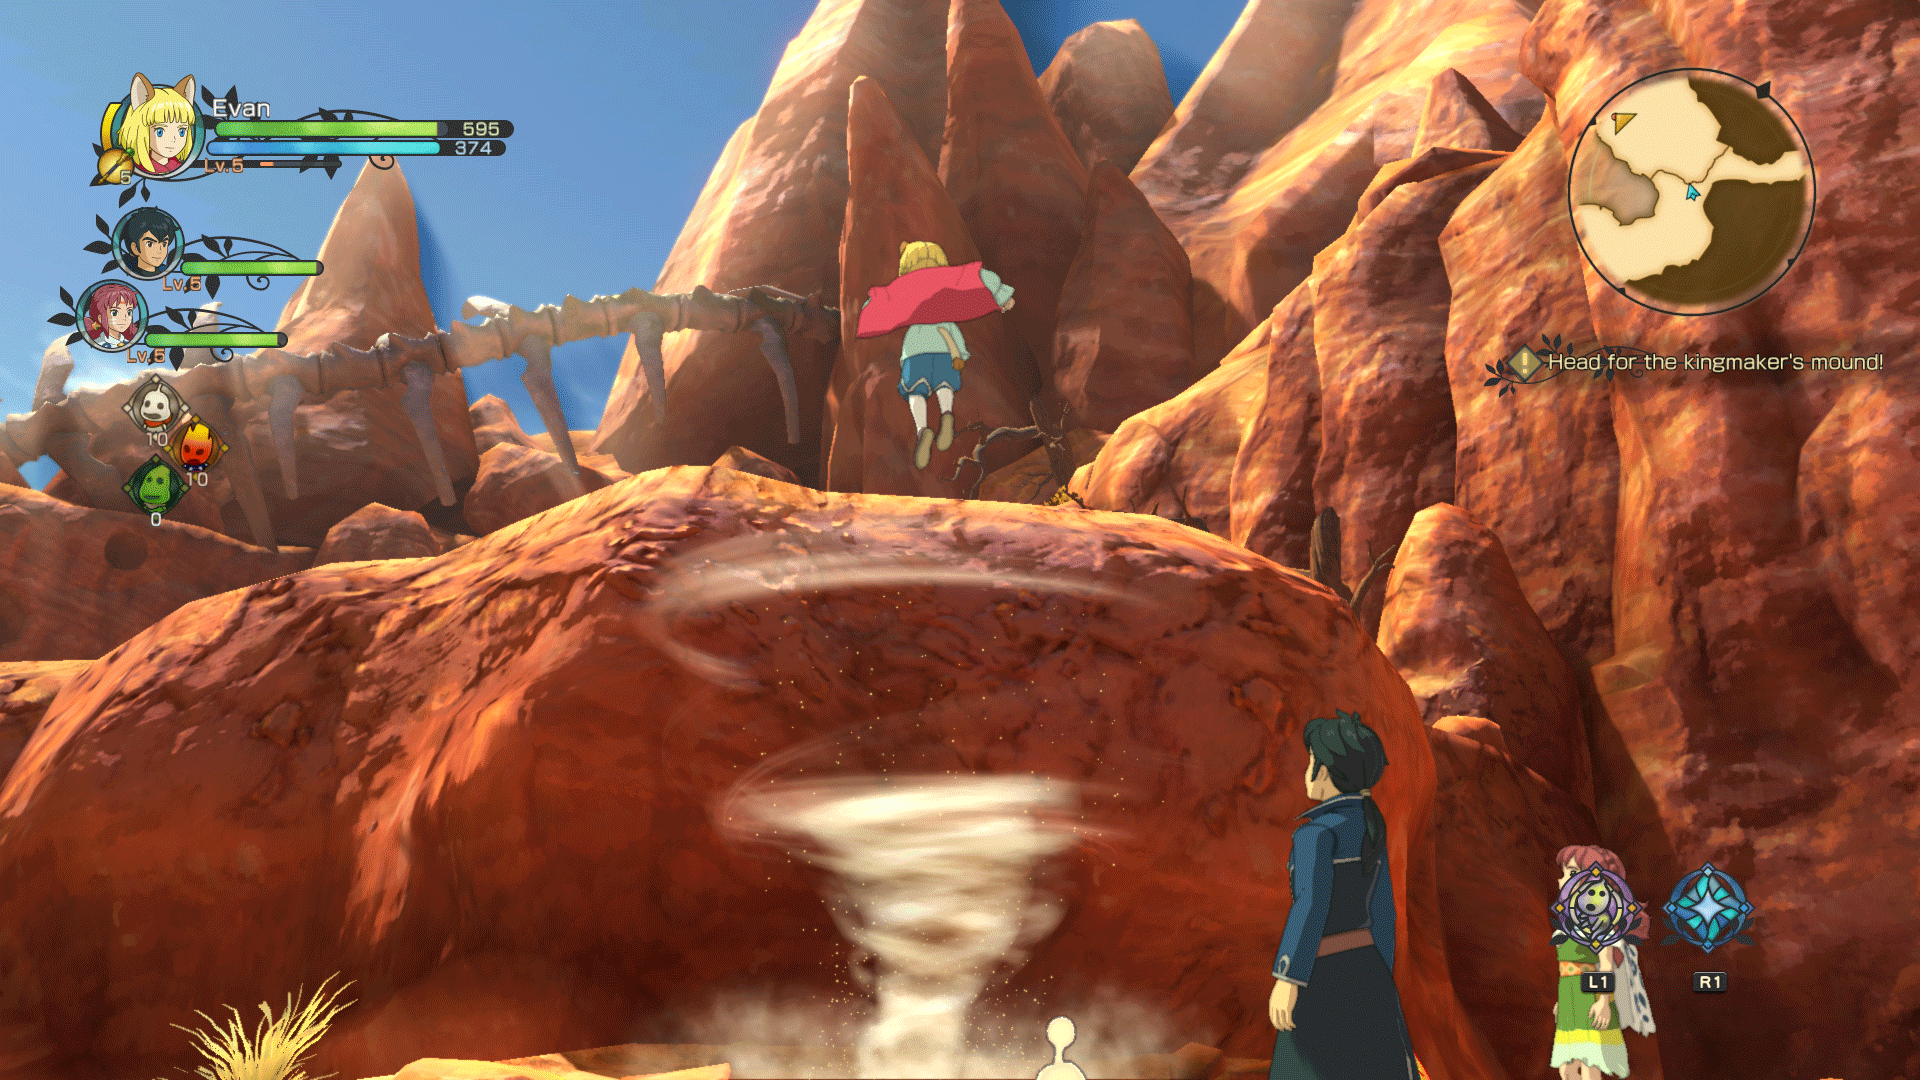 ni-no-kuni-2-screens-4